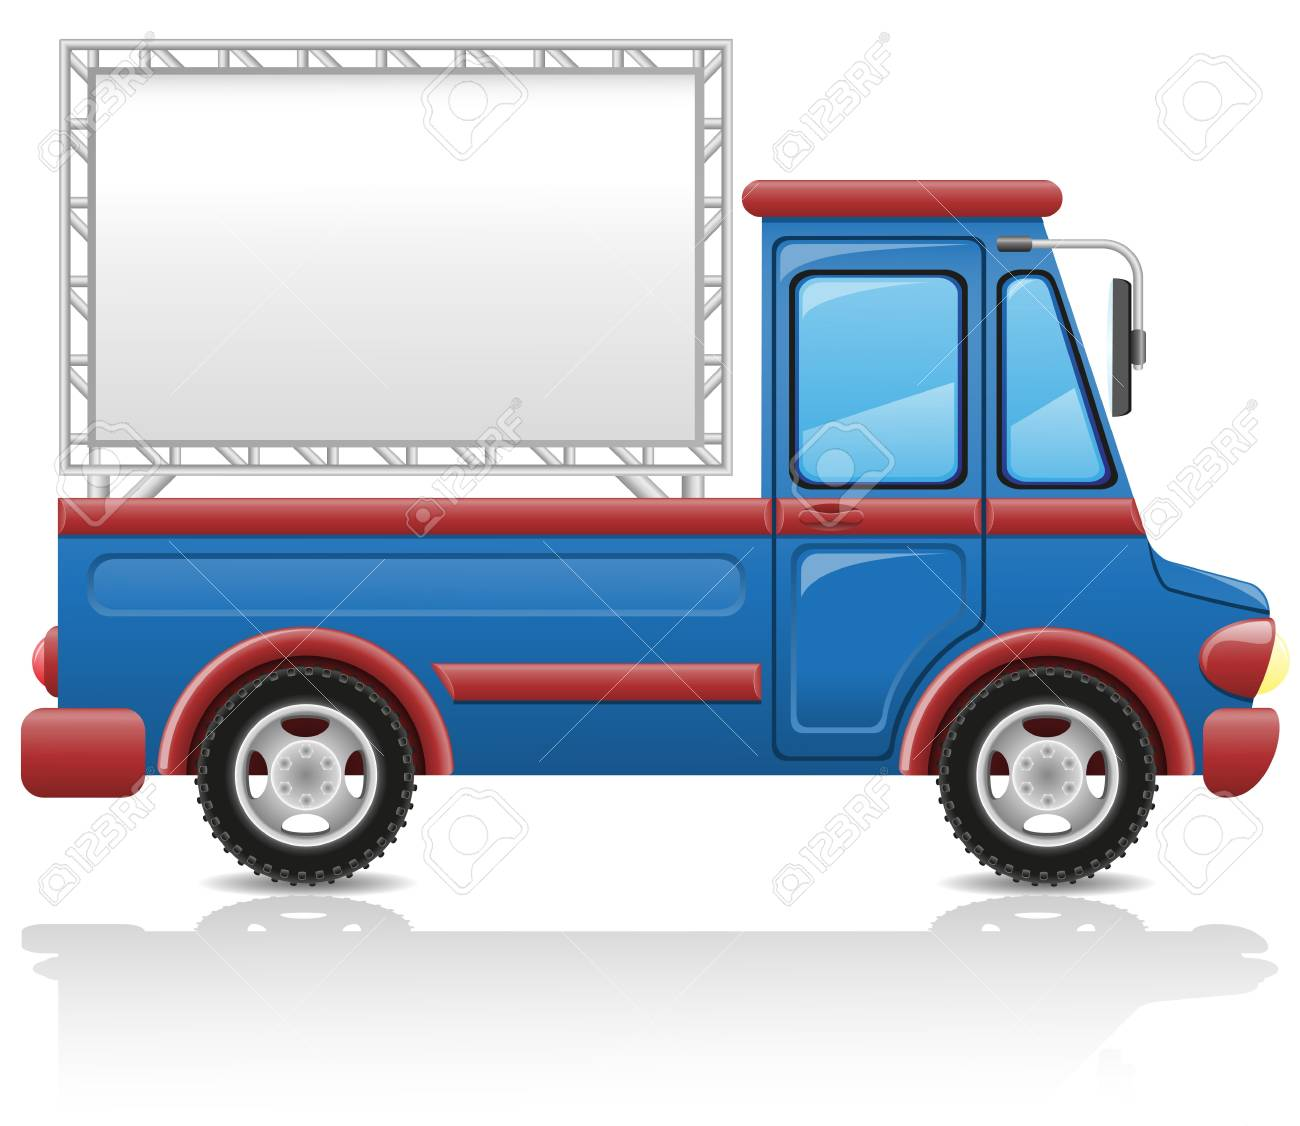 car with a billboard illustration isolated on white background Stock Illustration - 16445676